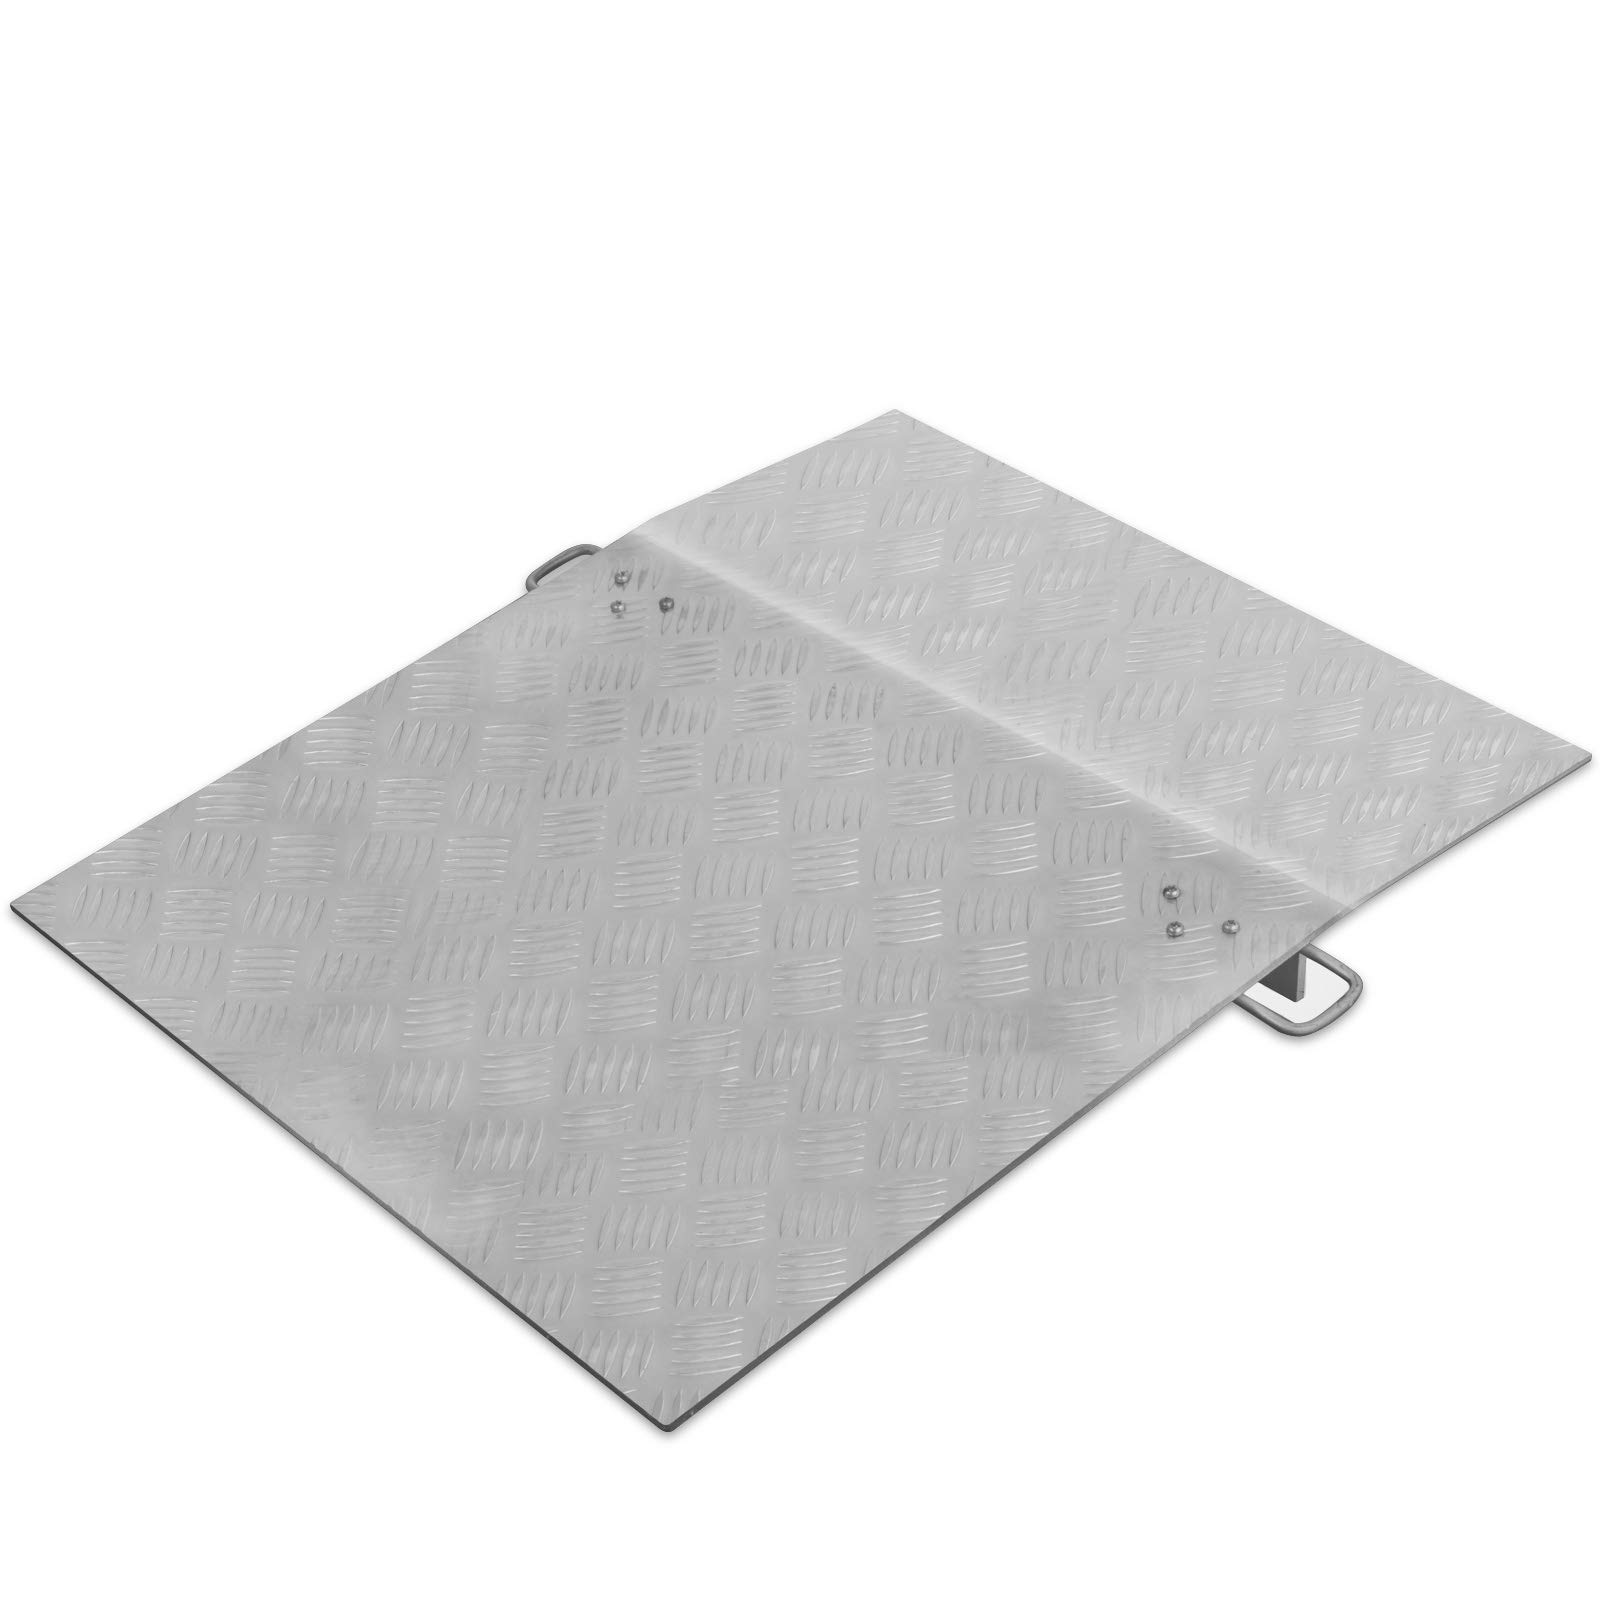 BestEquip Truck Dock Plate 500lbs 30'' Length 30'' Usable Width 10mm Thickness Loading Dock Plates Aluminum Dock Plate for Carts Pallet Trucks